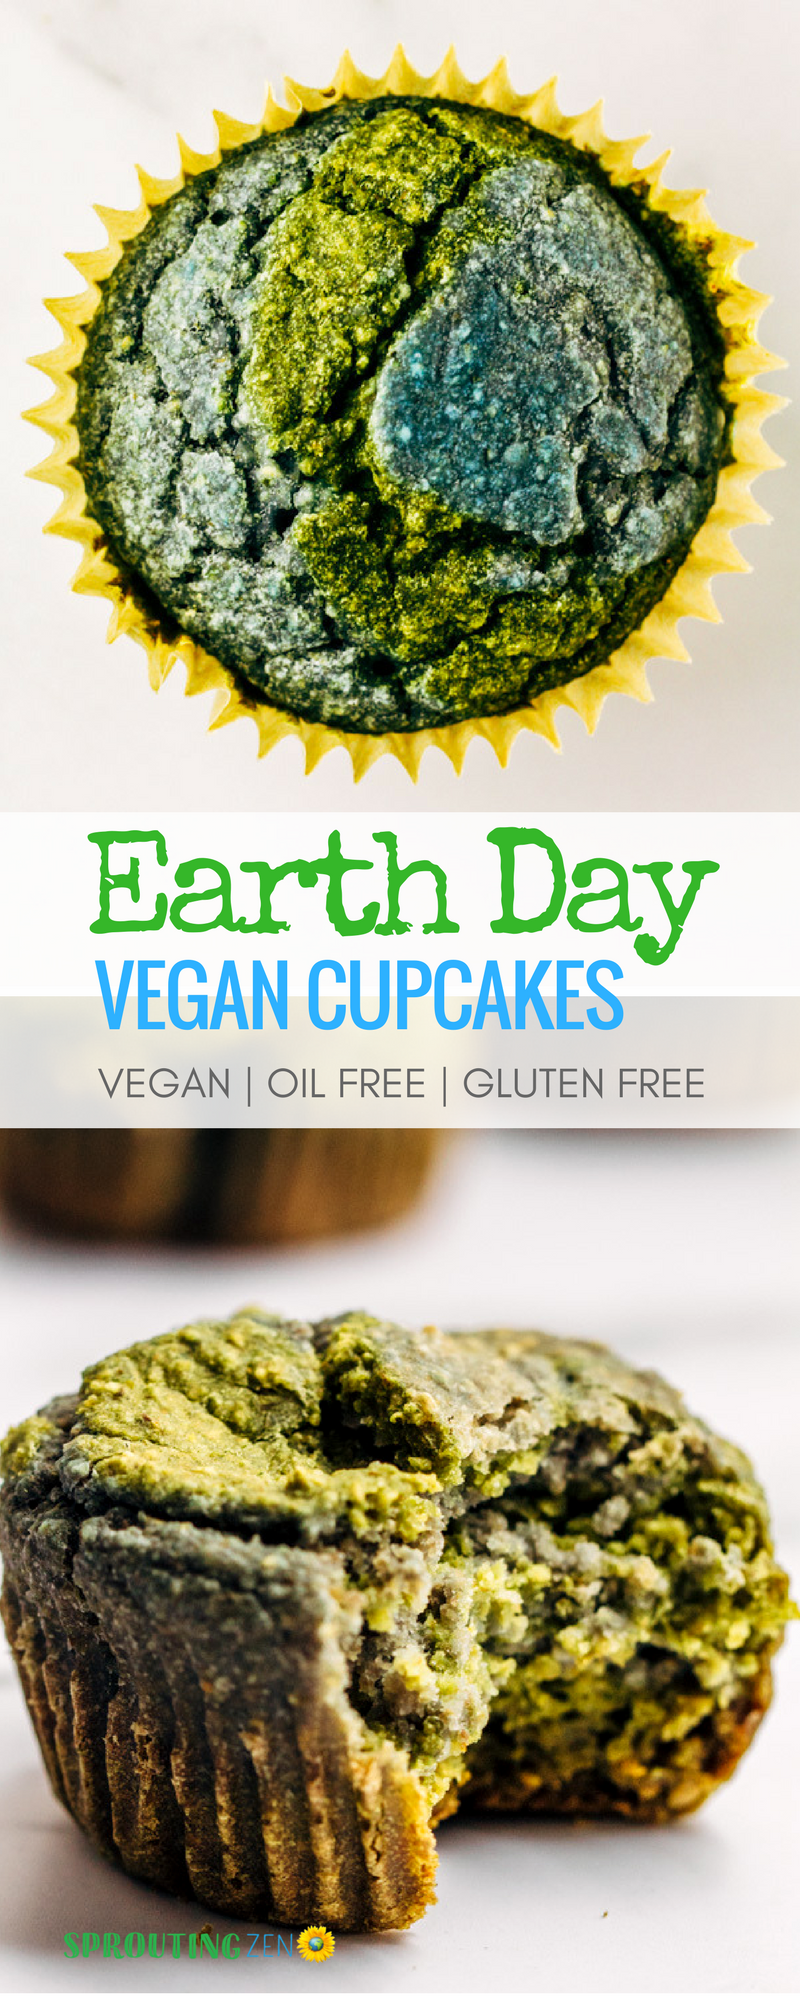 A fun and easy way to celebrate EARTH day! Vegan cupcakes that are oil free, refined sugar free, and gluten free! #VEGAN #PLANTBASED #EARTHDAY